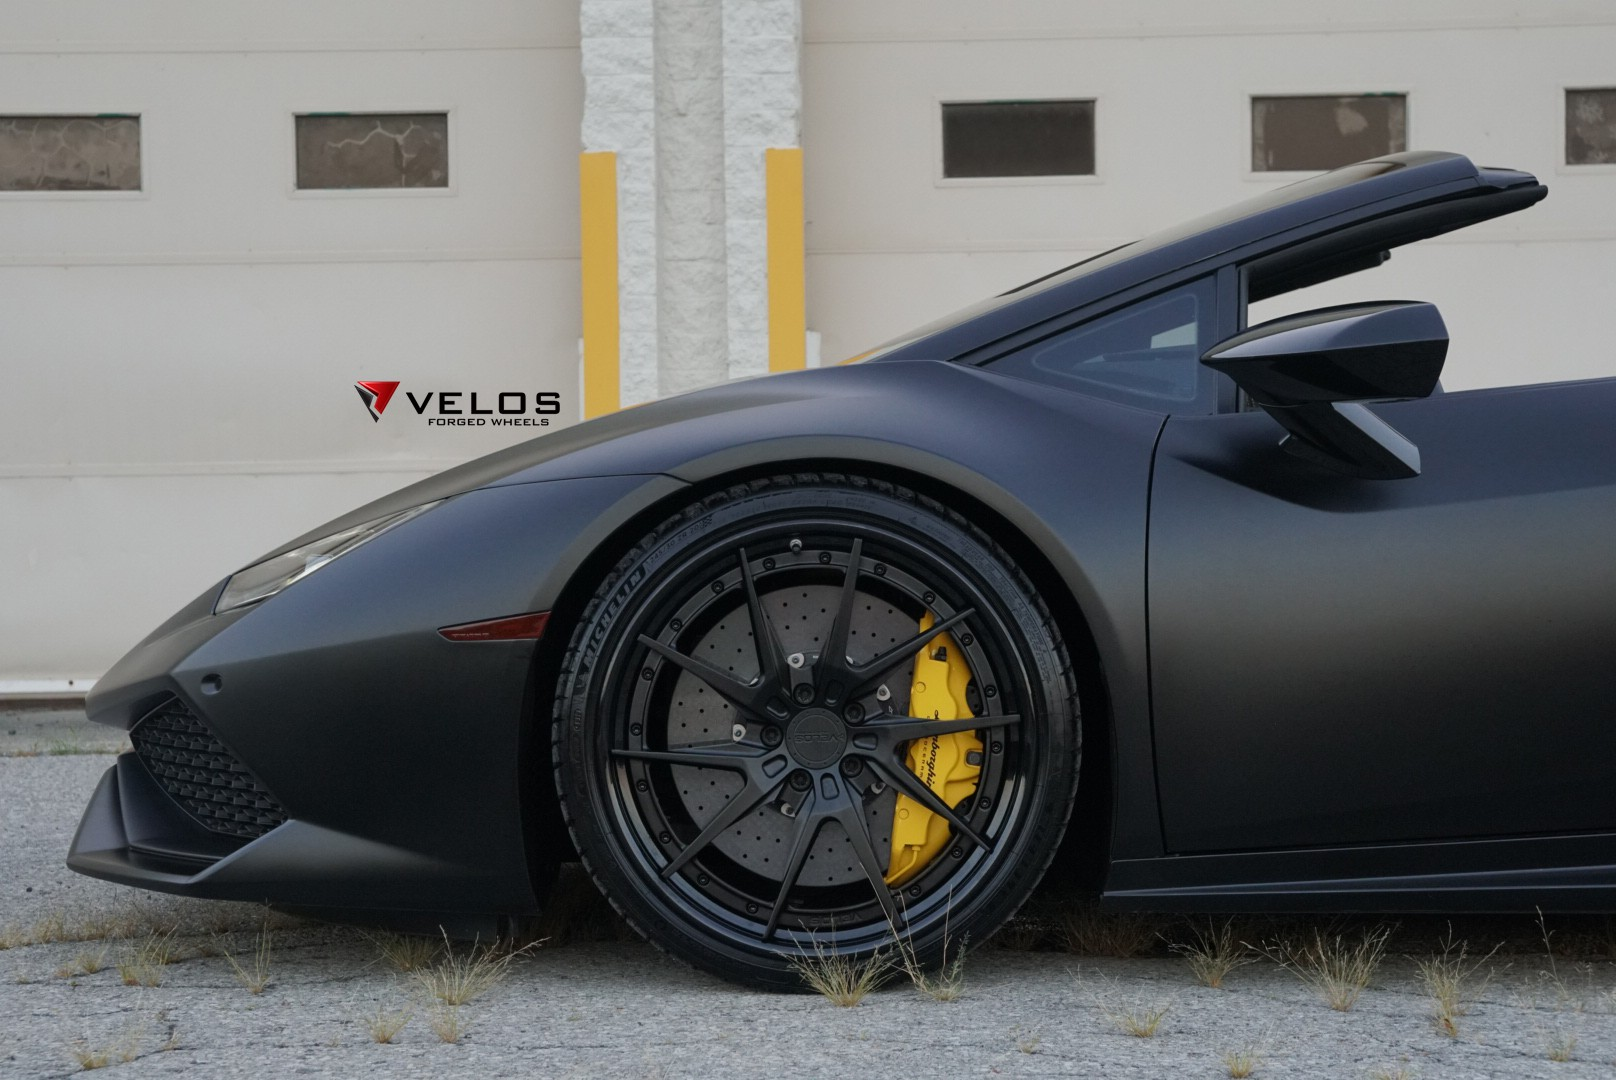 Lamborghini Huracán LP 610 4 Spyder on Velos wheels 3pc Float